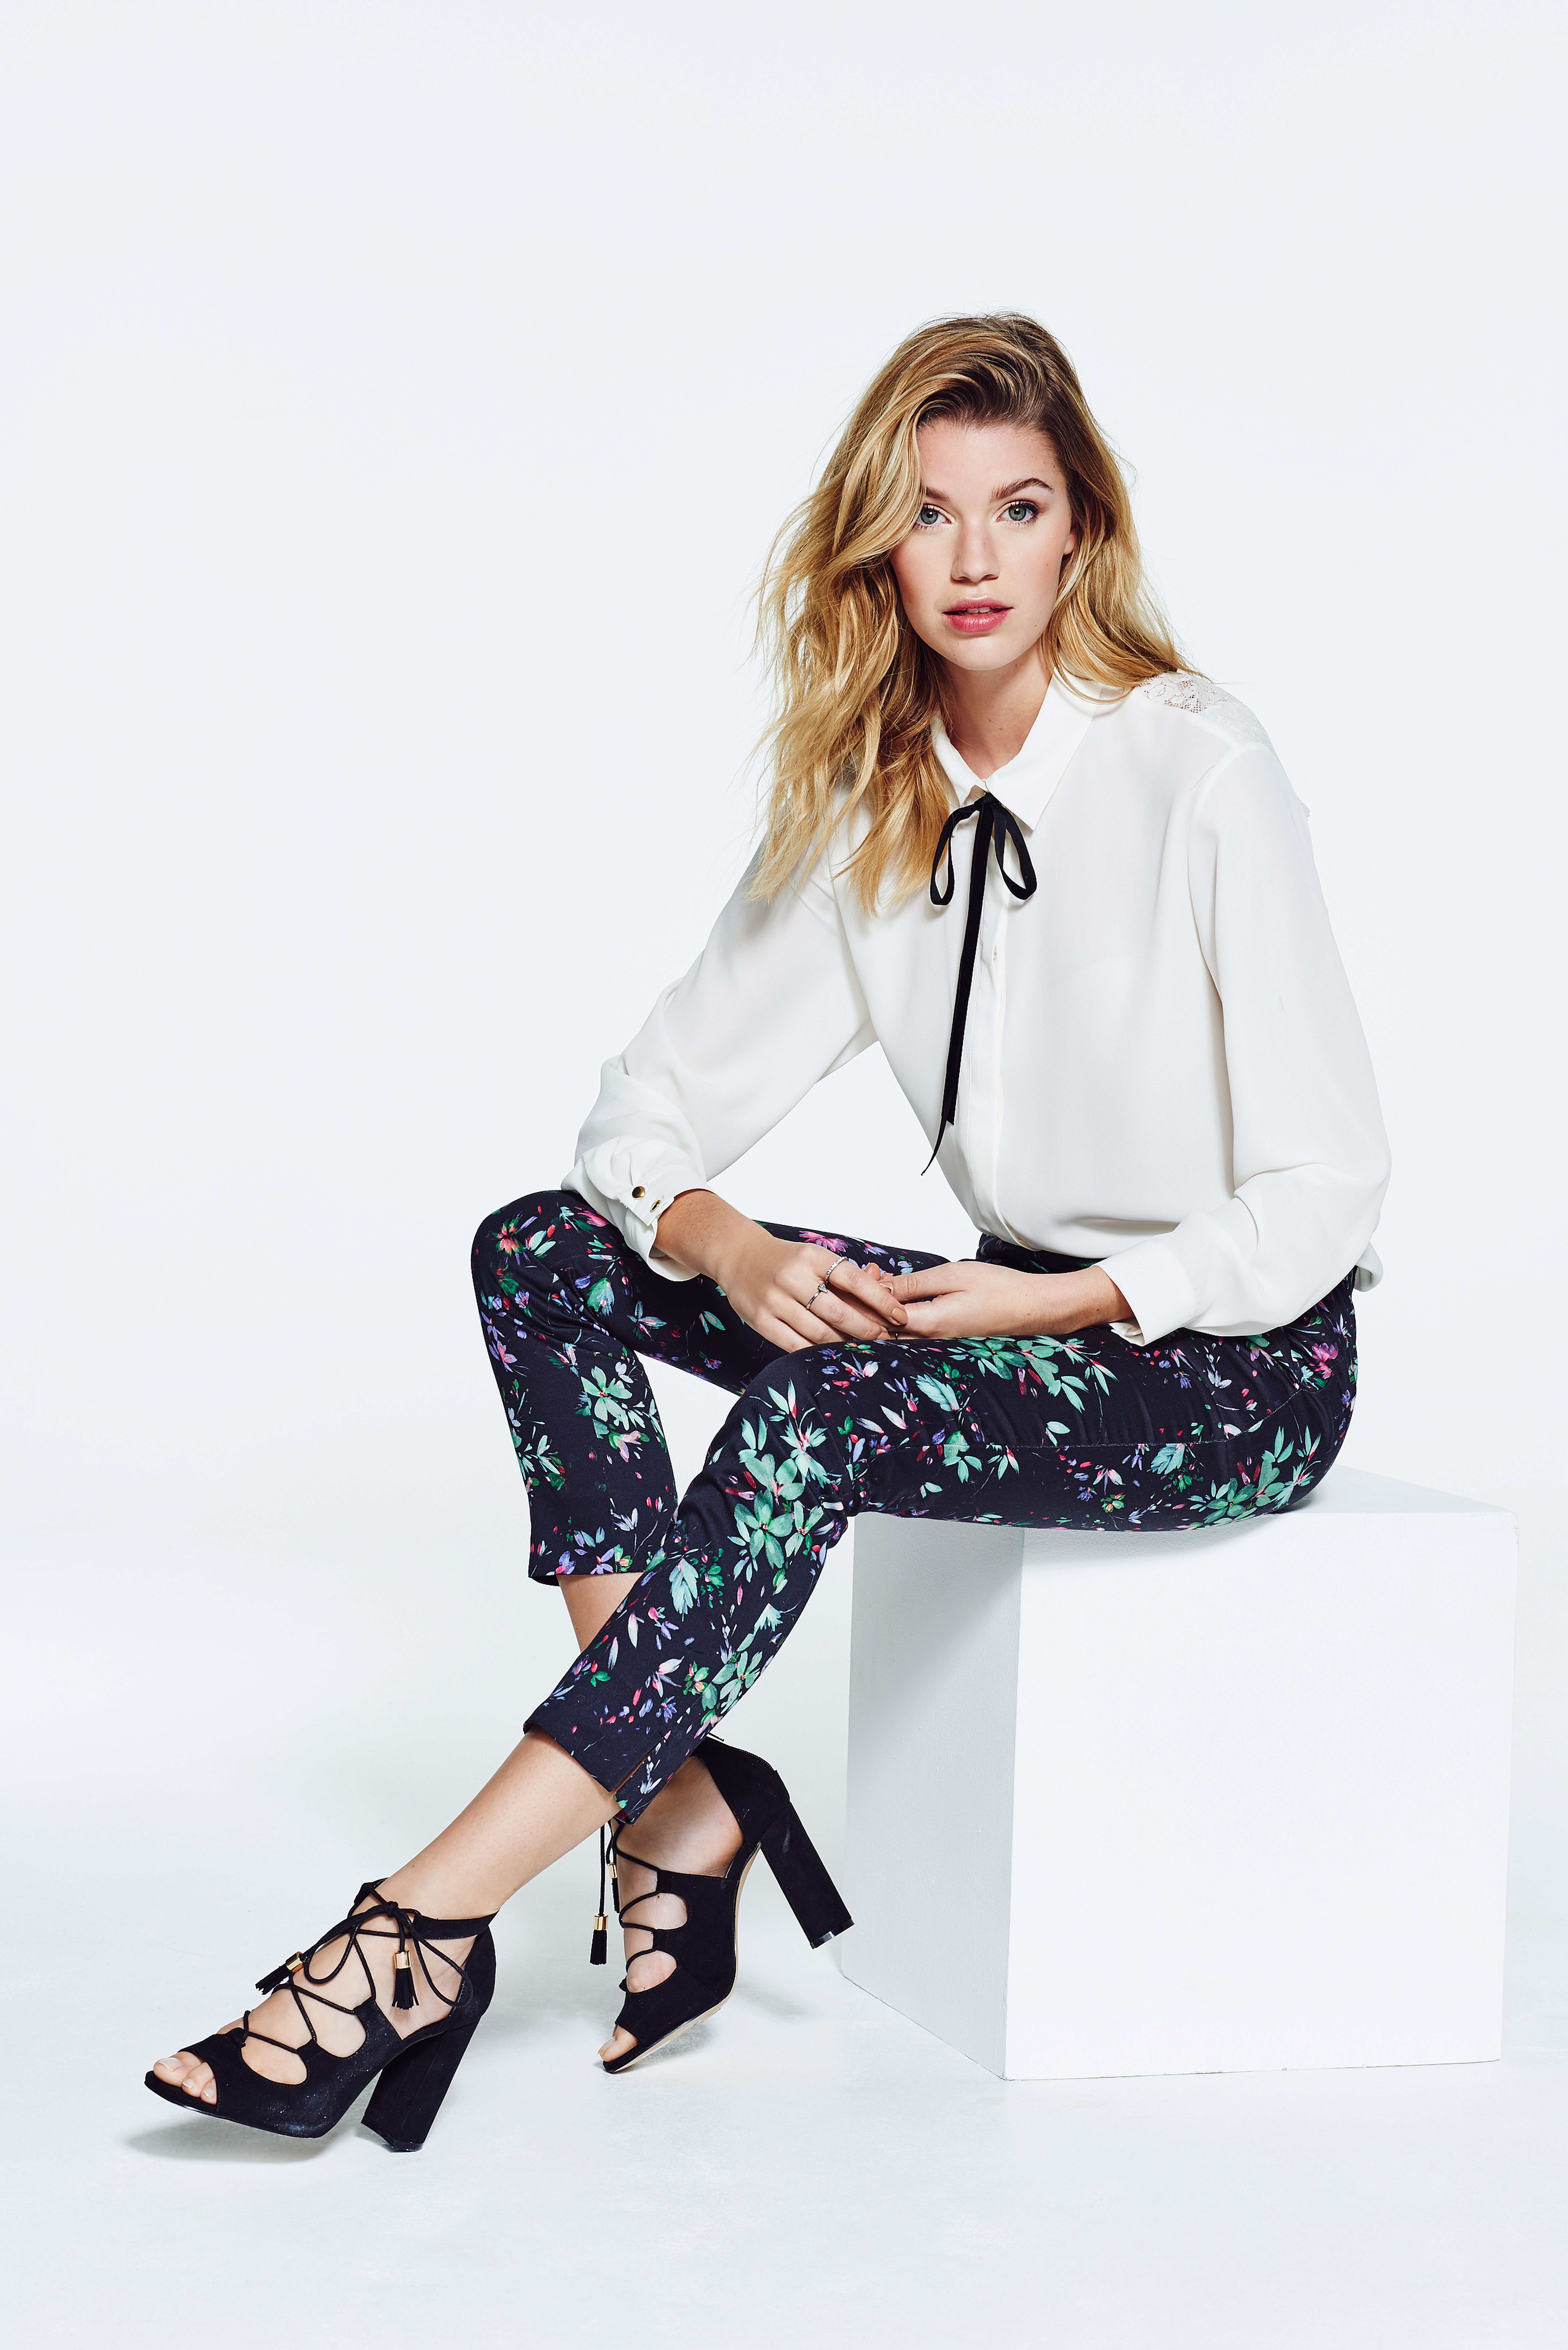 V by Very LACE COWL BACK BLOUSE e42, floral print trouser e38, Shoebox tassel sandal e35